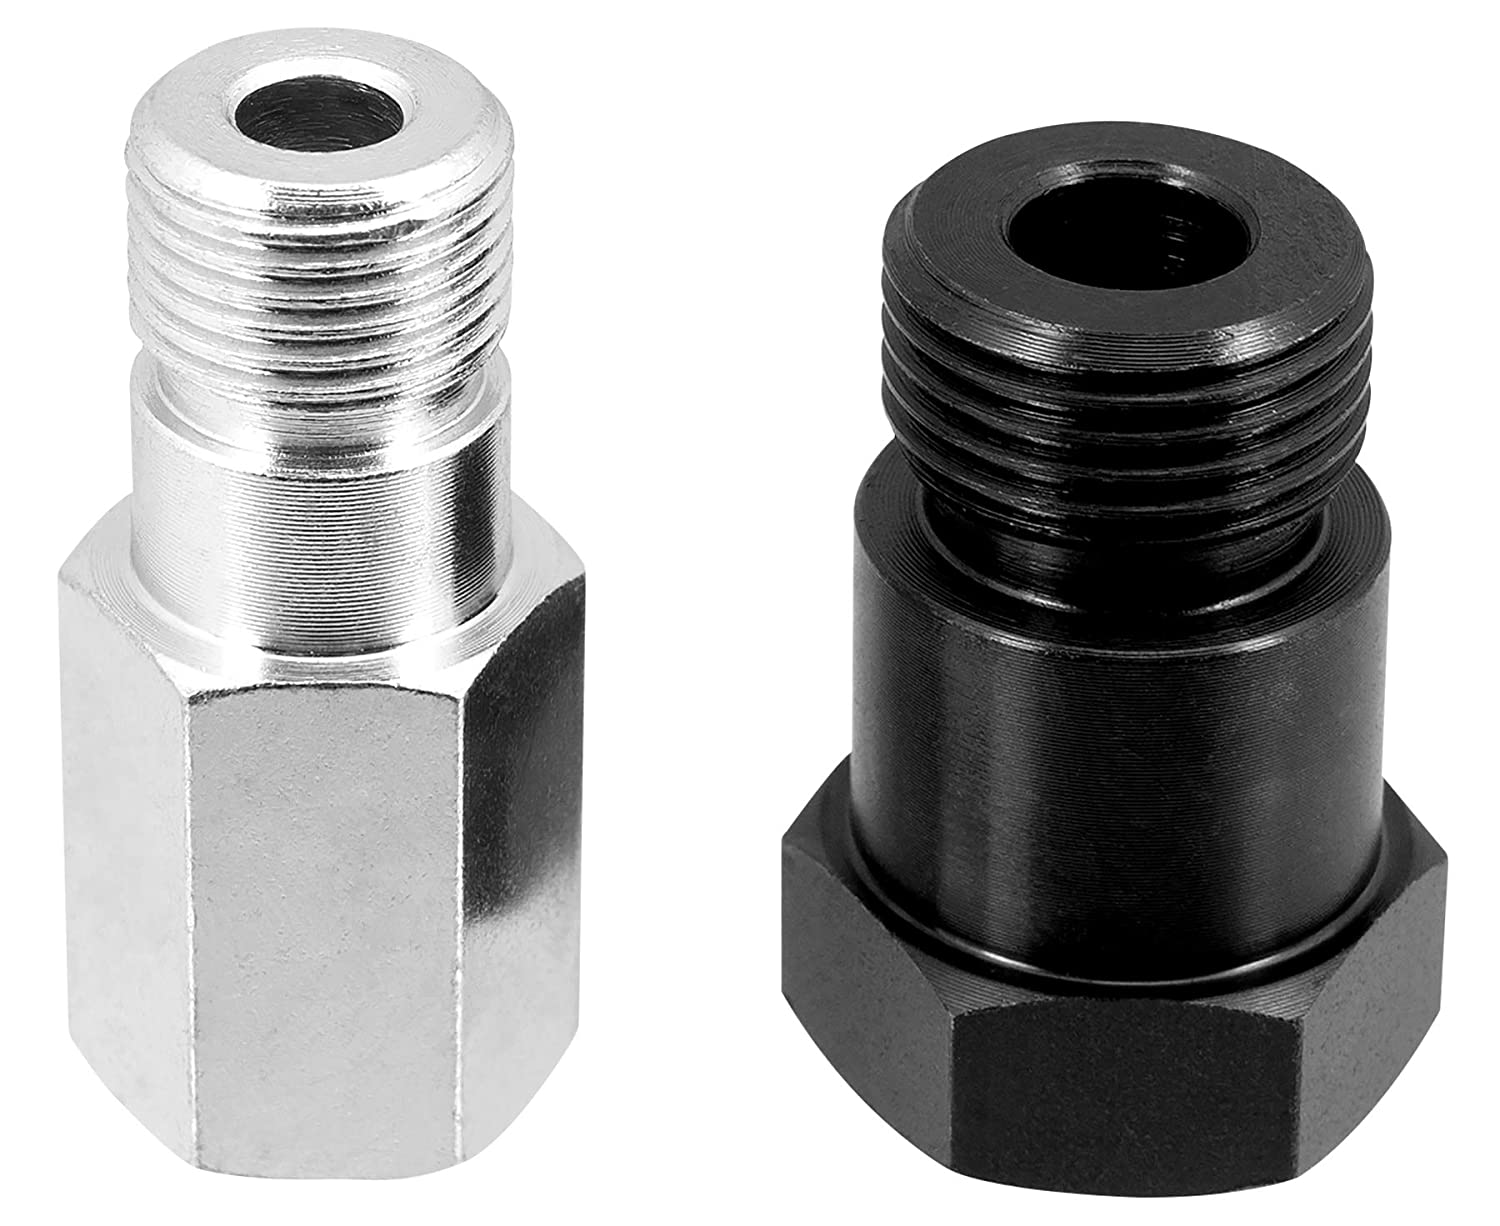 Amazon.com: Performance Tool W84005 Air Hold Fitting, 14mm/18mm: Automotive